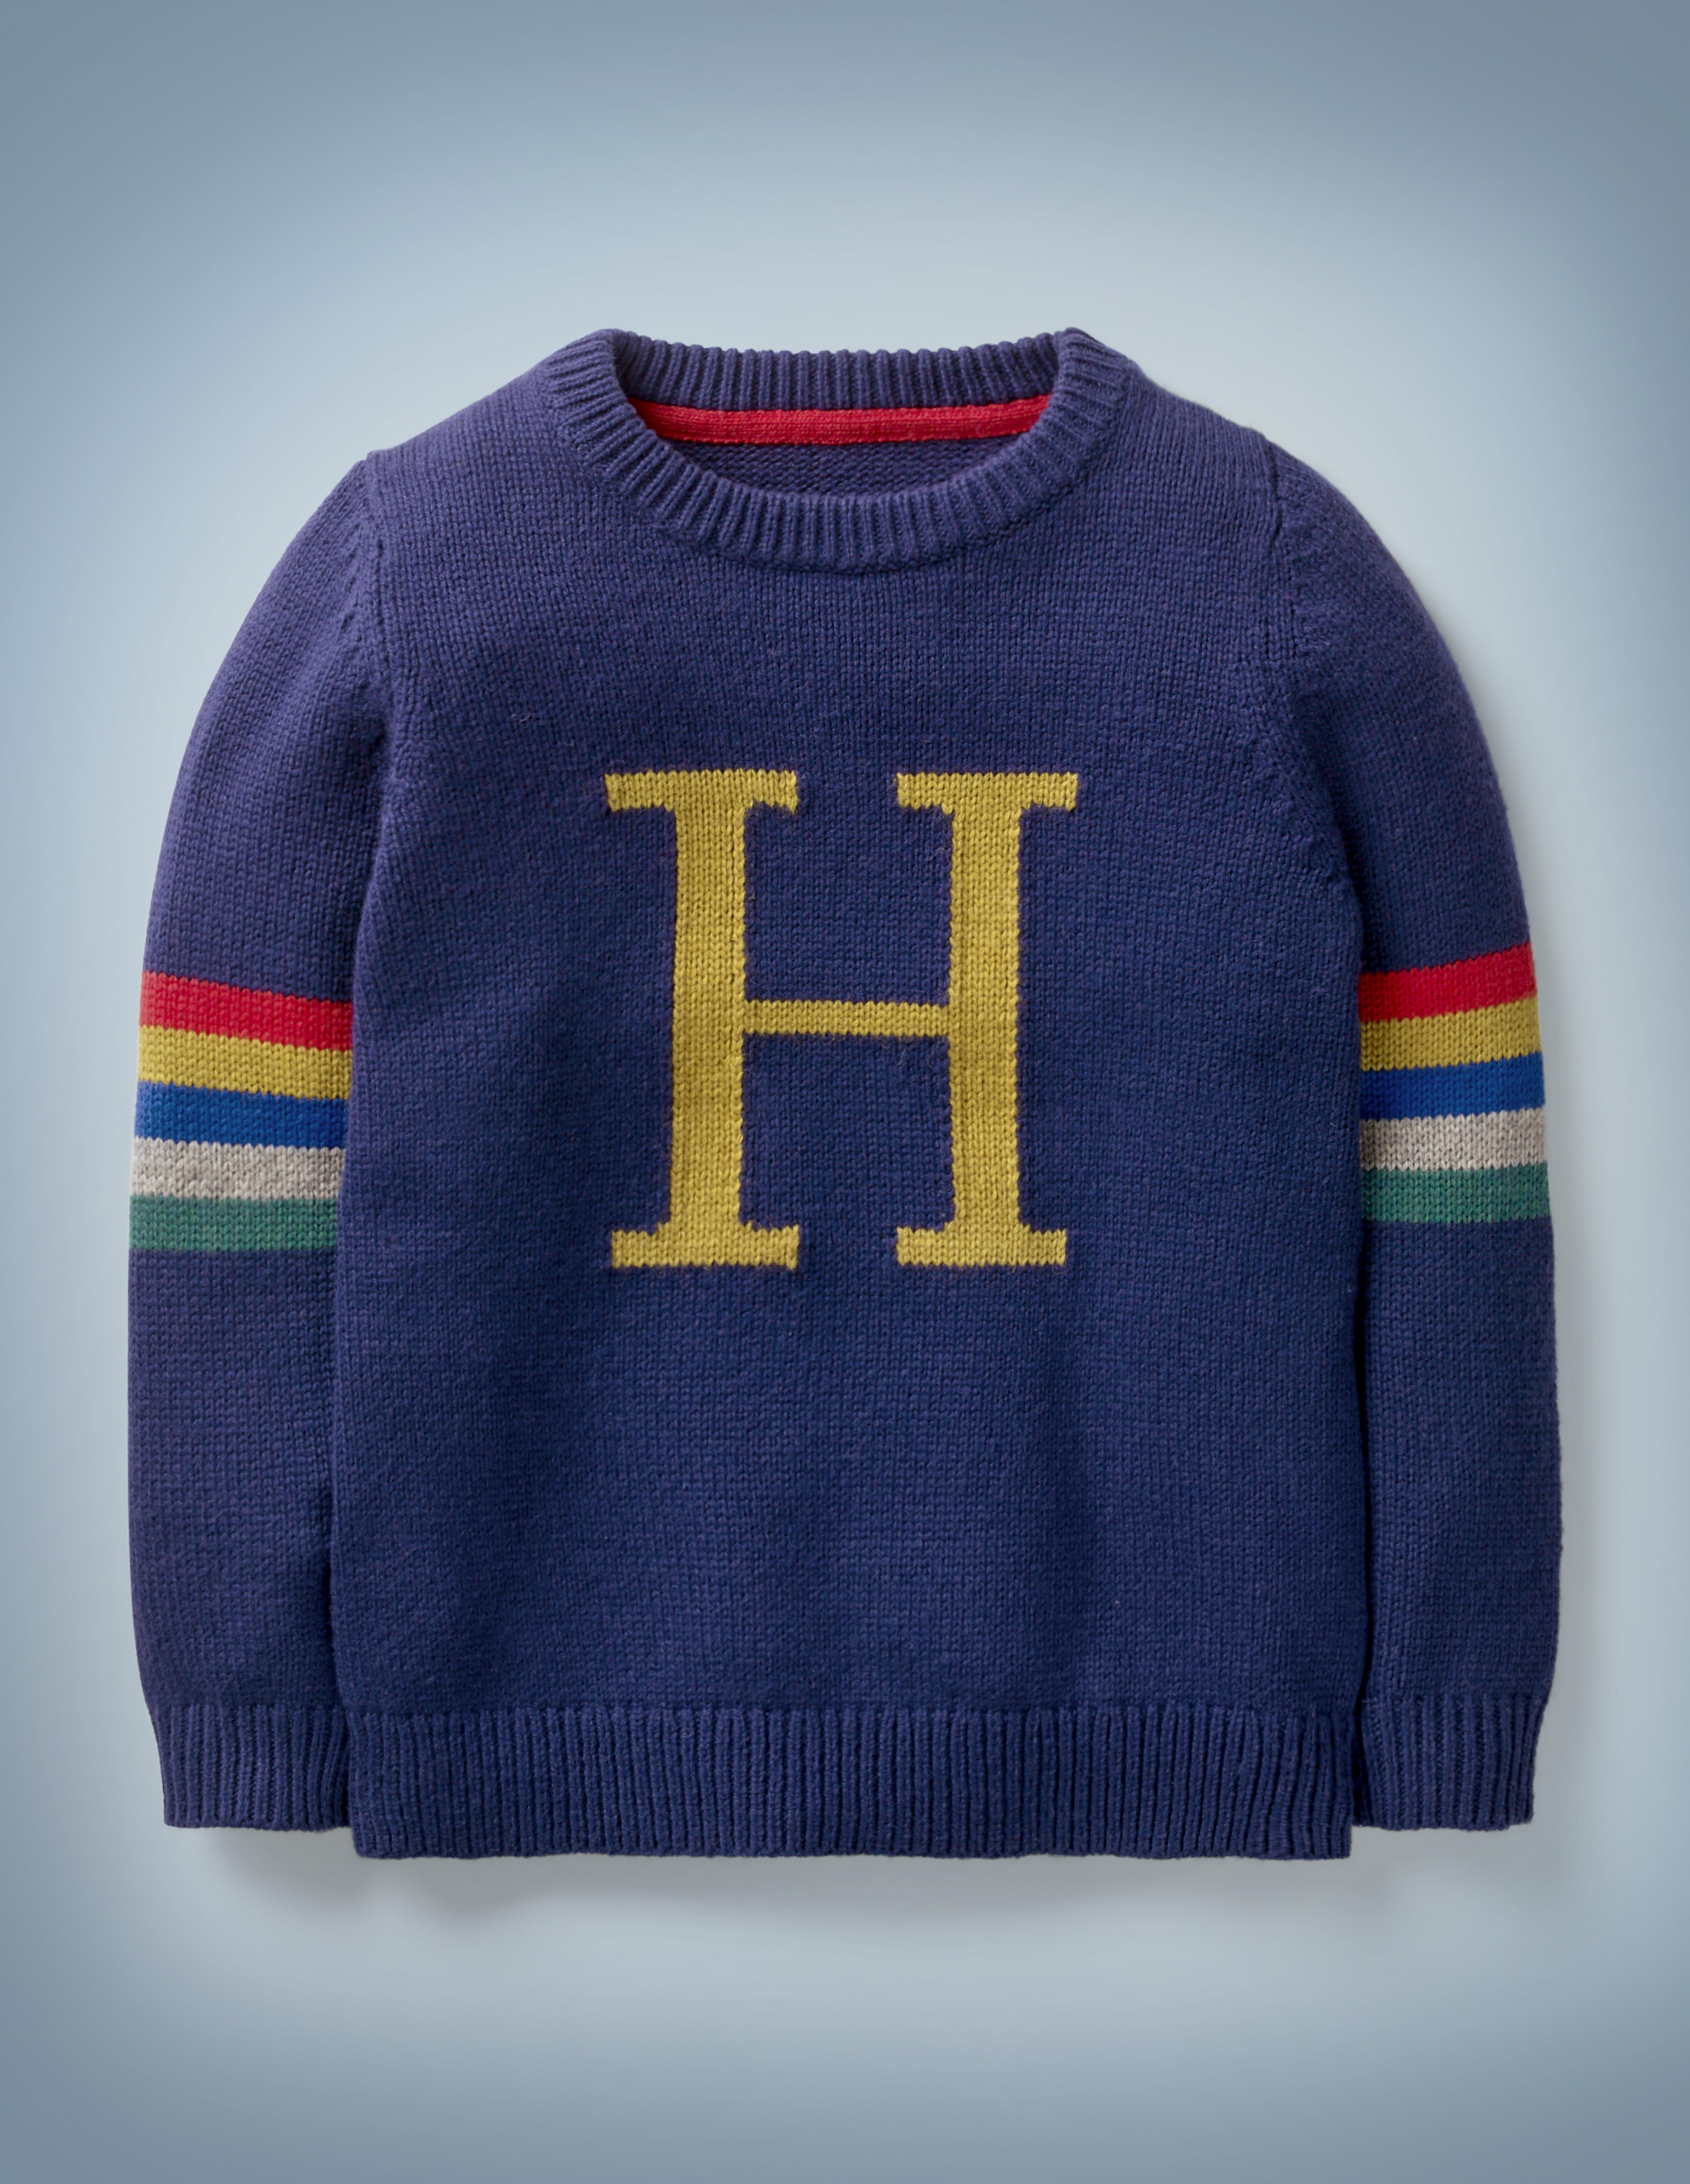 """The Mini Boden Harry Potter Knitted Jumper in blue is reminiscent of the Christmas sweater lovingly knitted for Harry by Molly Weasley. It features a large gold """"H"""" in the center with stripes in Hogwarts House colors on both sleeves. It retails between £32 and £37."""